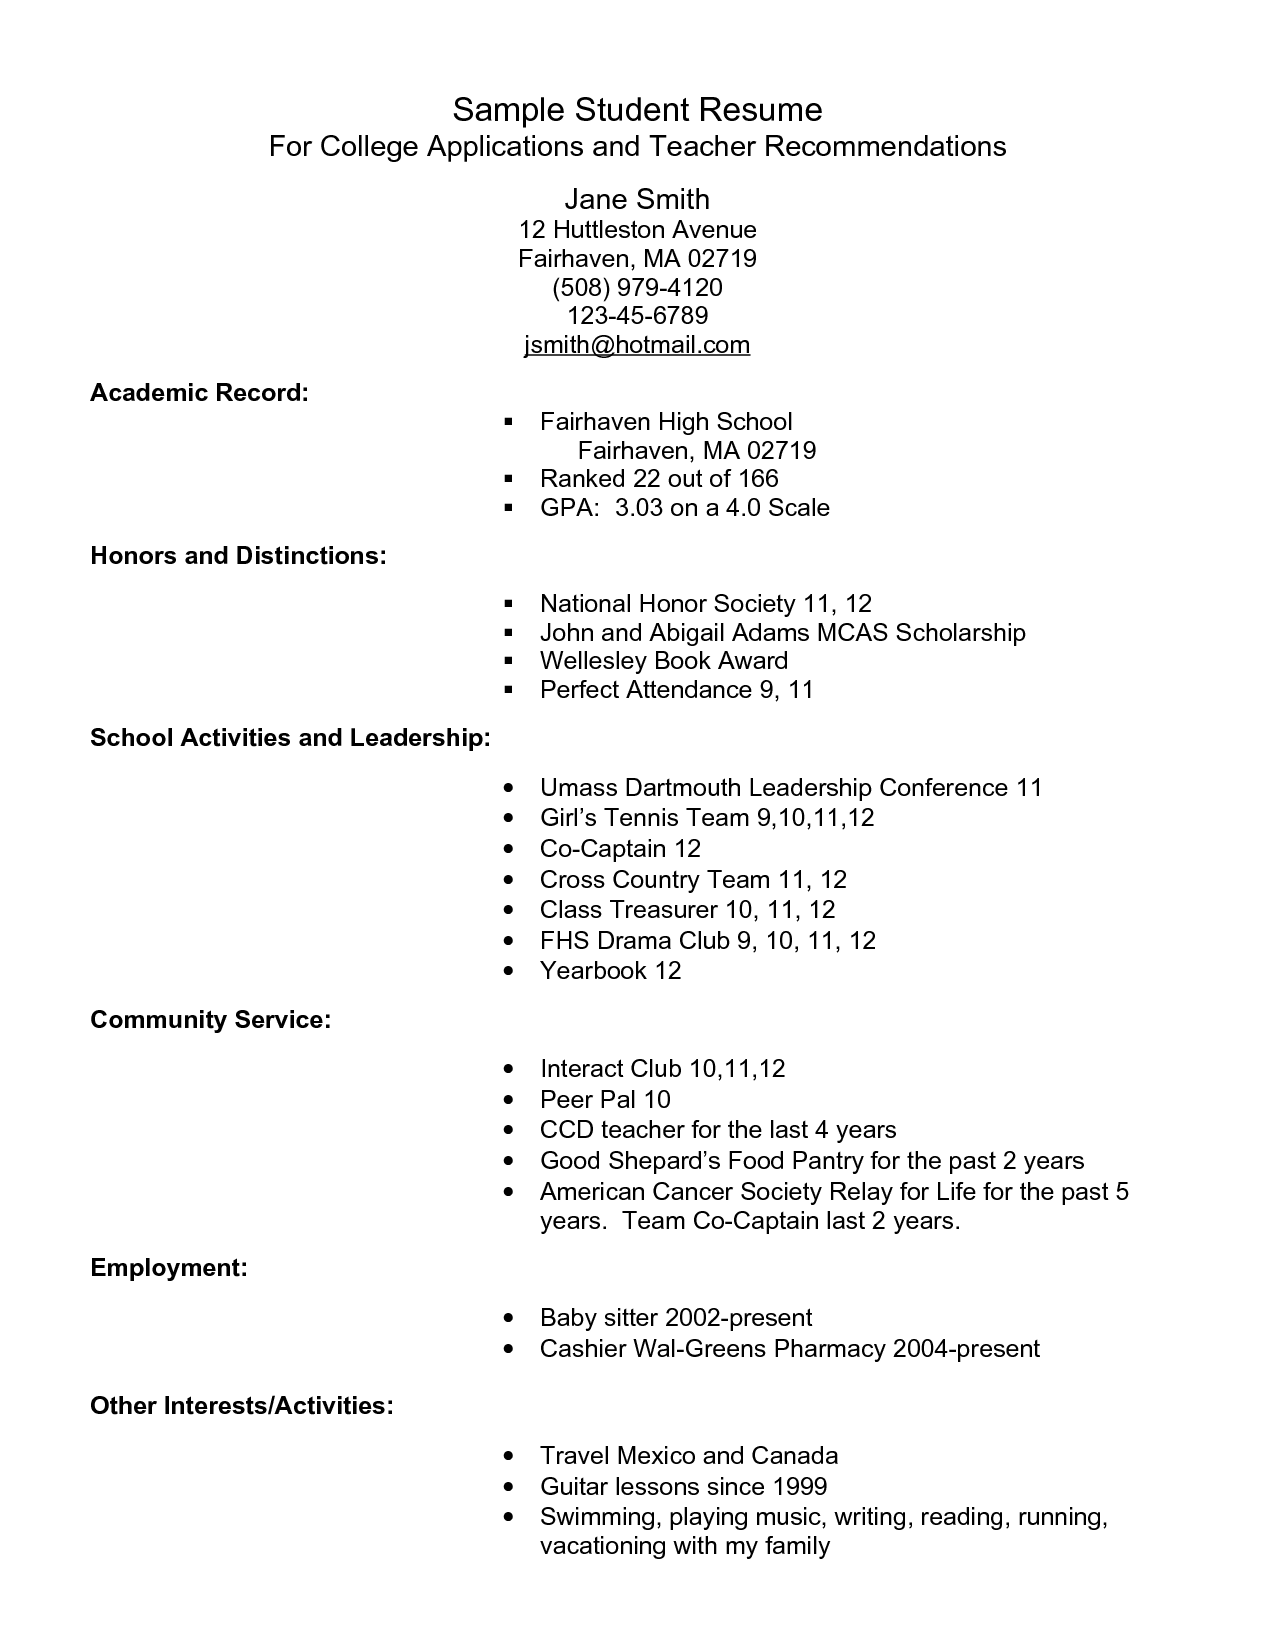 resume for college application examples - Examples Of Graduate School Resumes